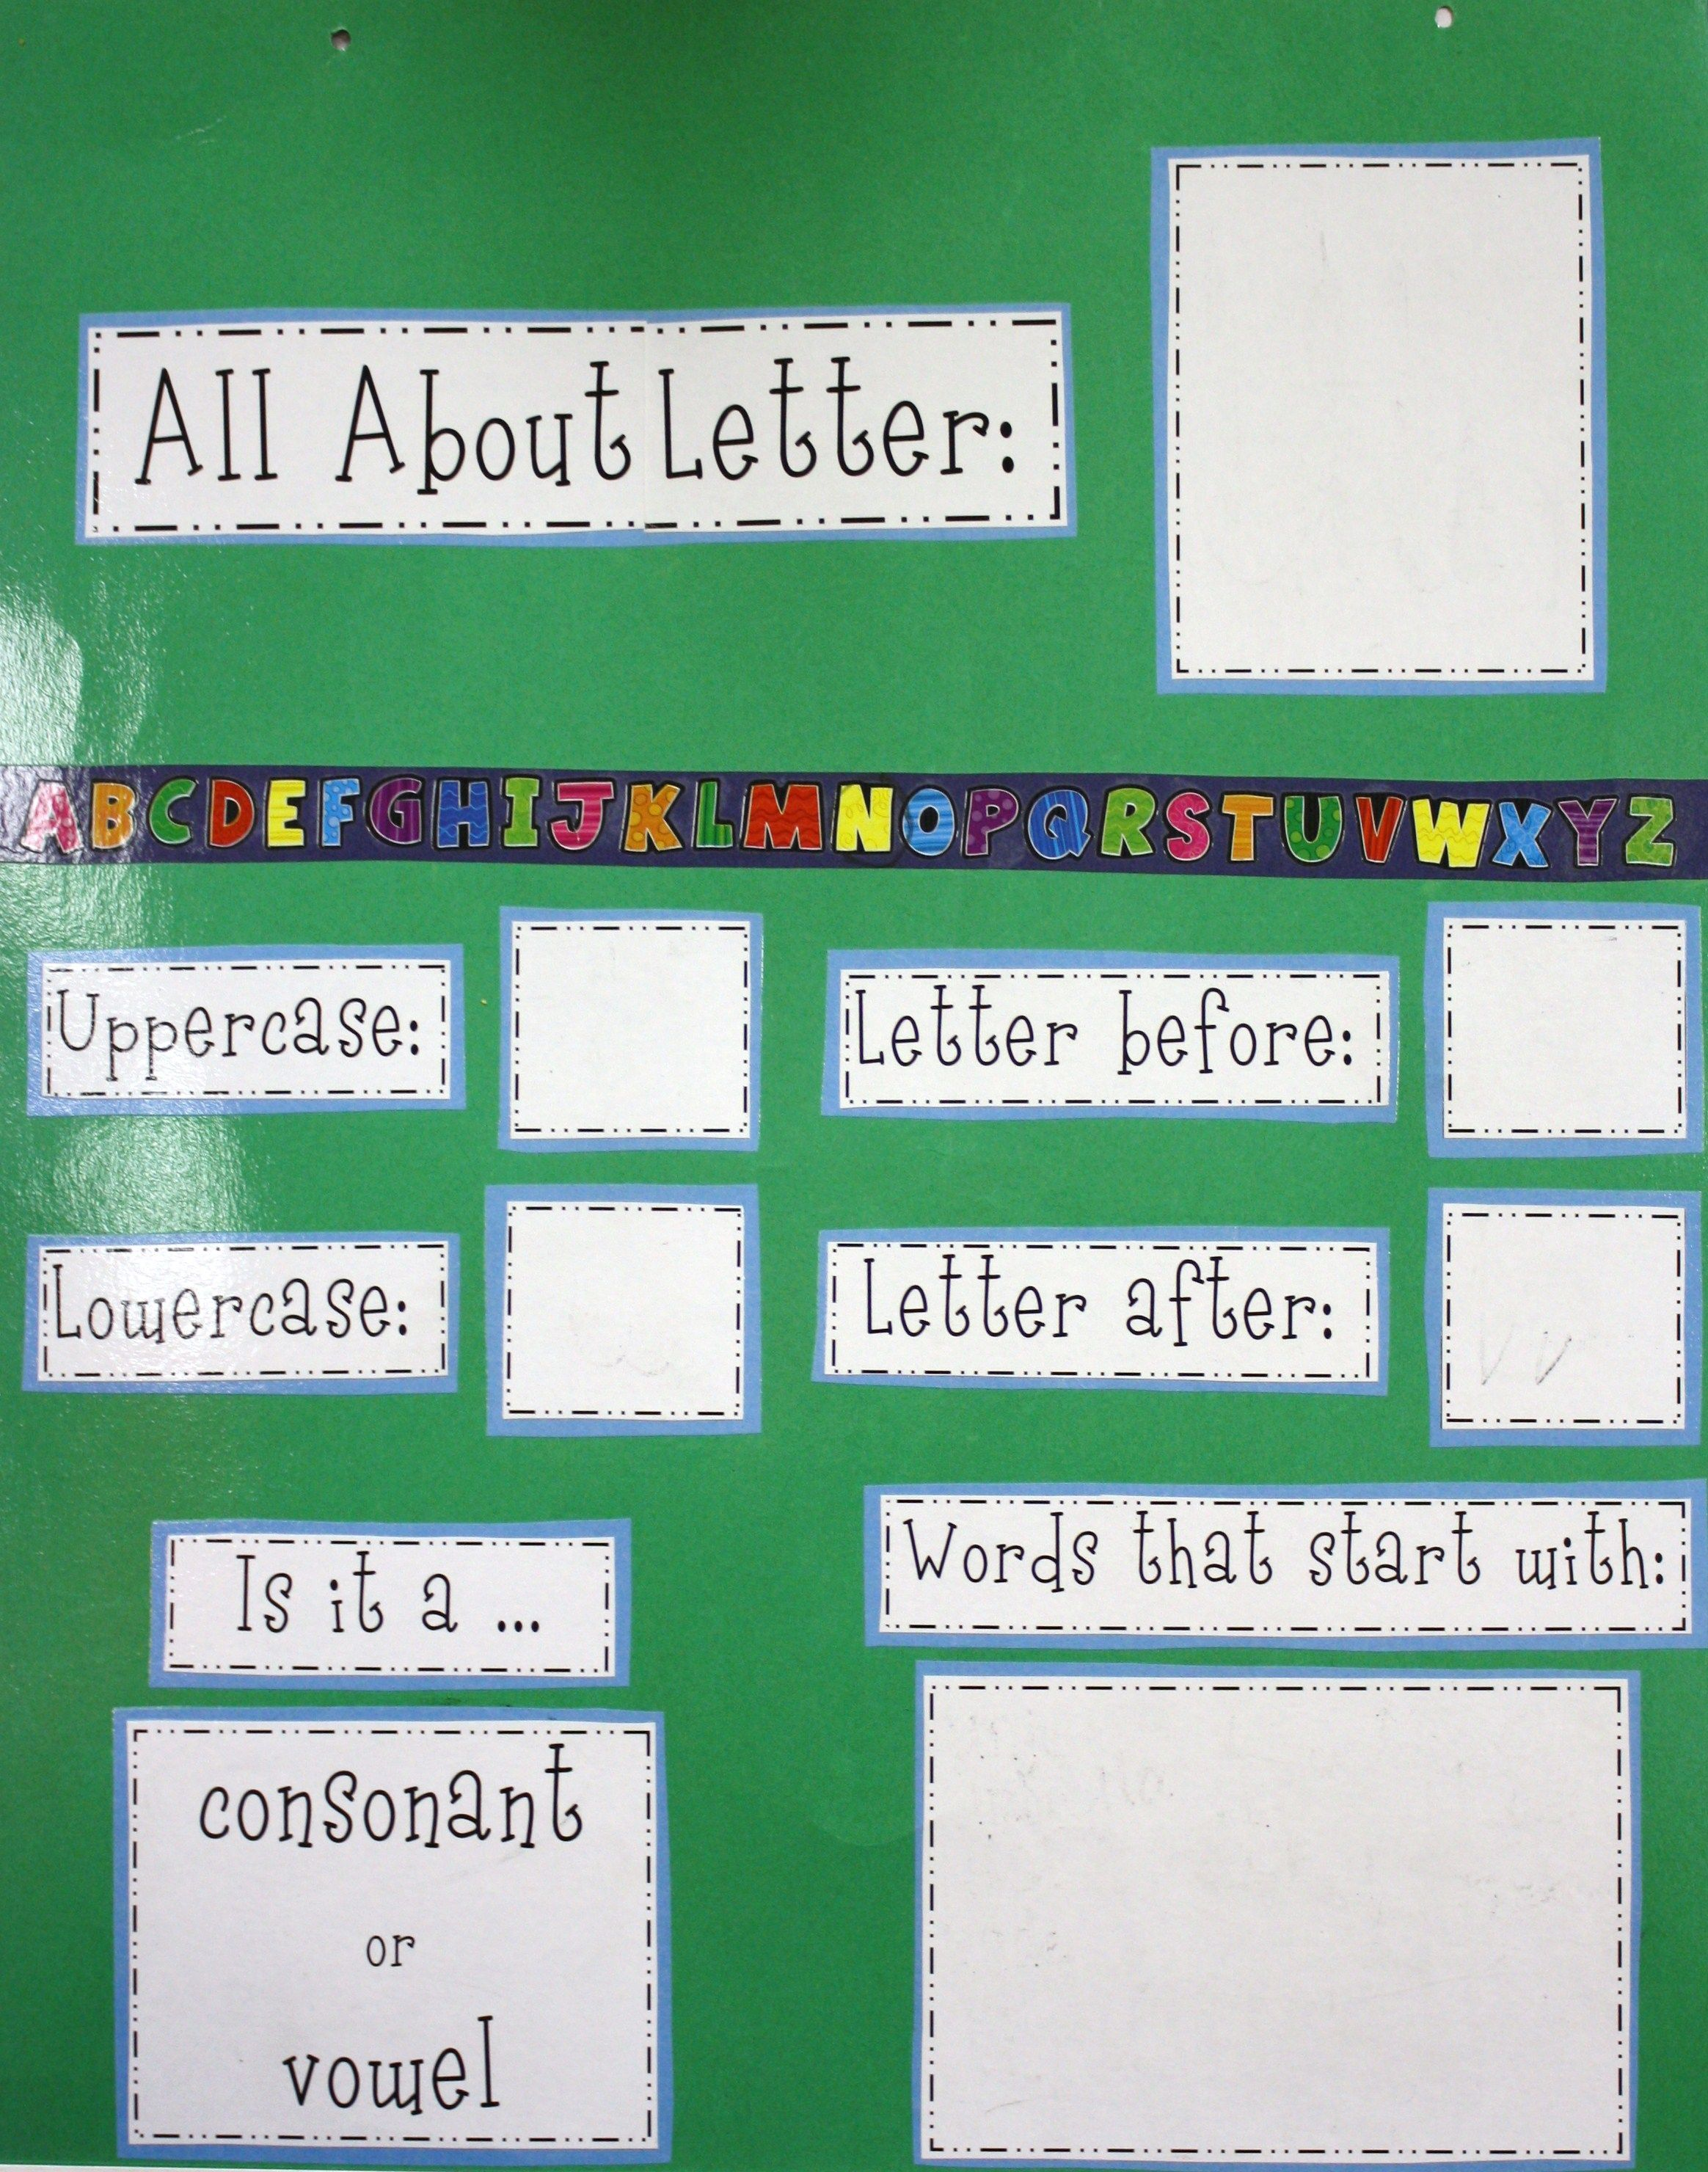 Language Arts Posters   All About Letter Poster   Kindergarten